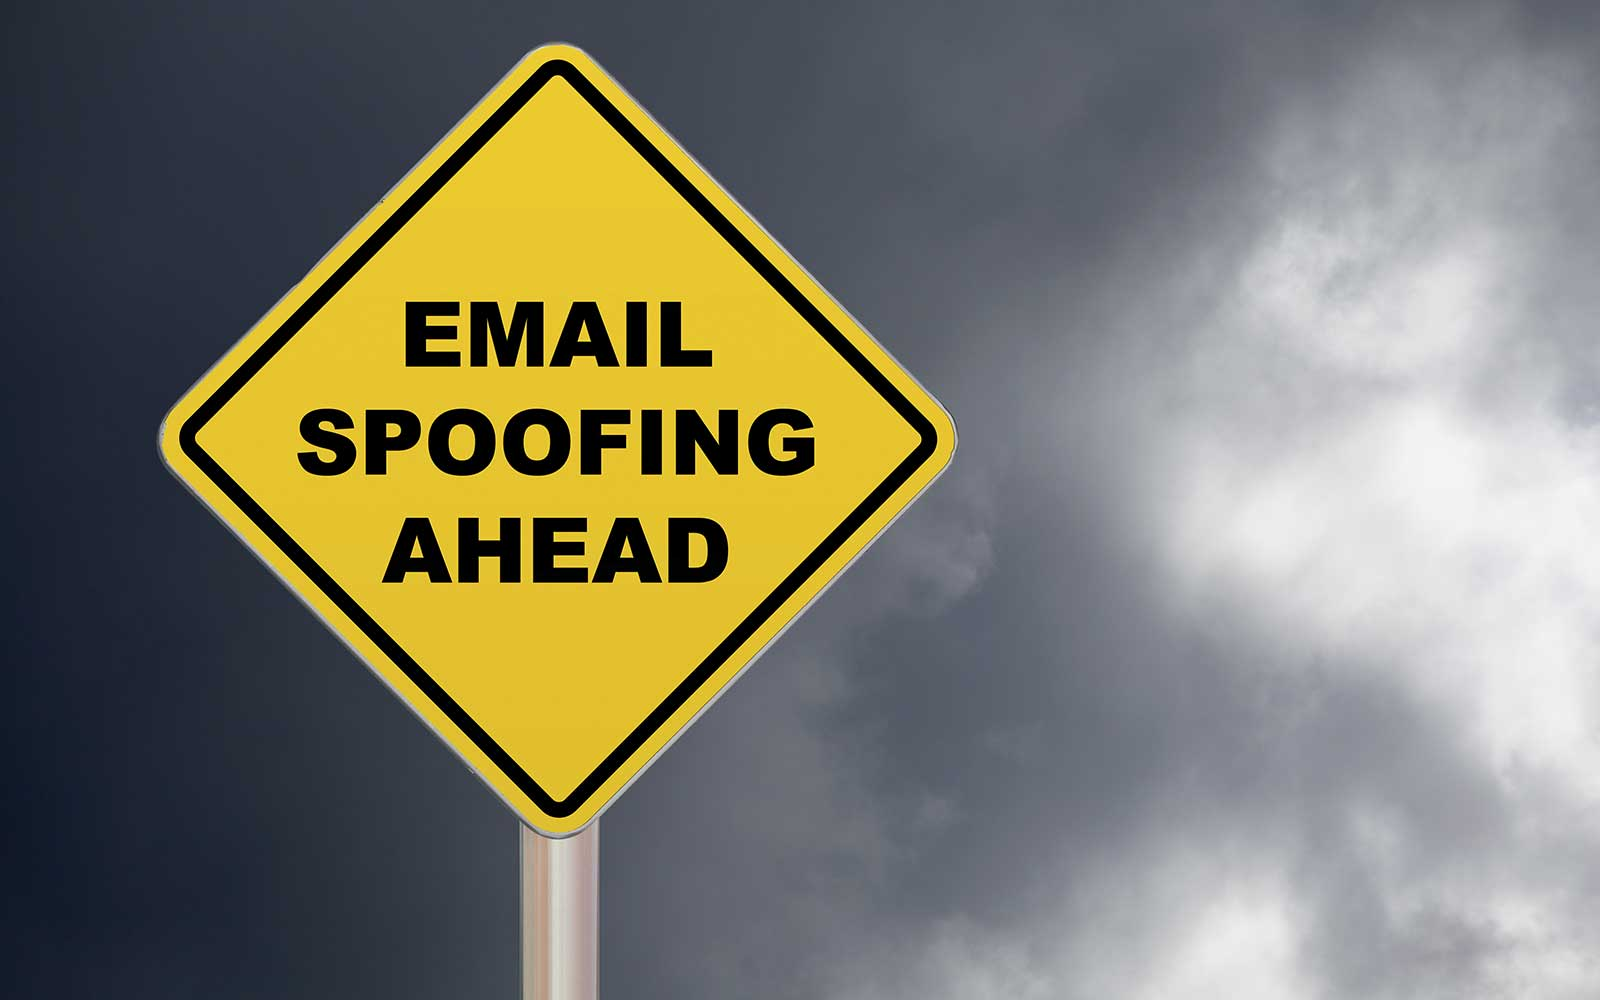 """email spoofing feature image of a yellow caution sign that warns """"email spoofing ahead"""""""